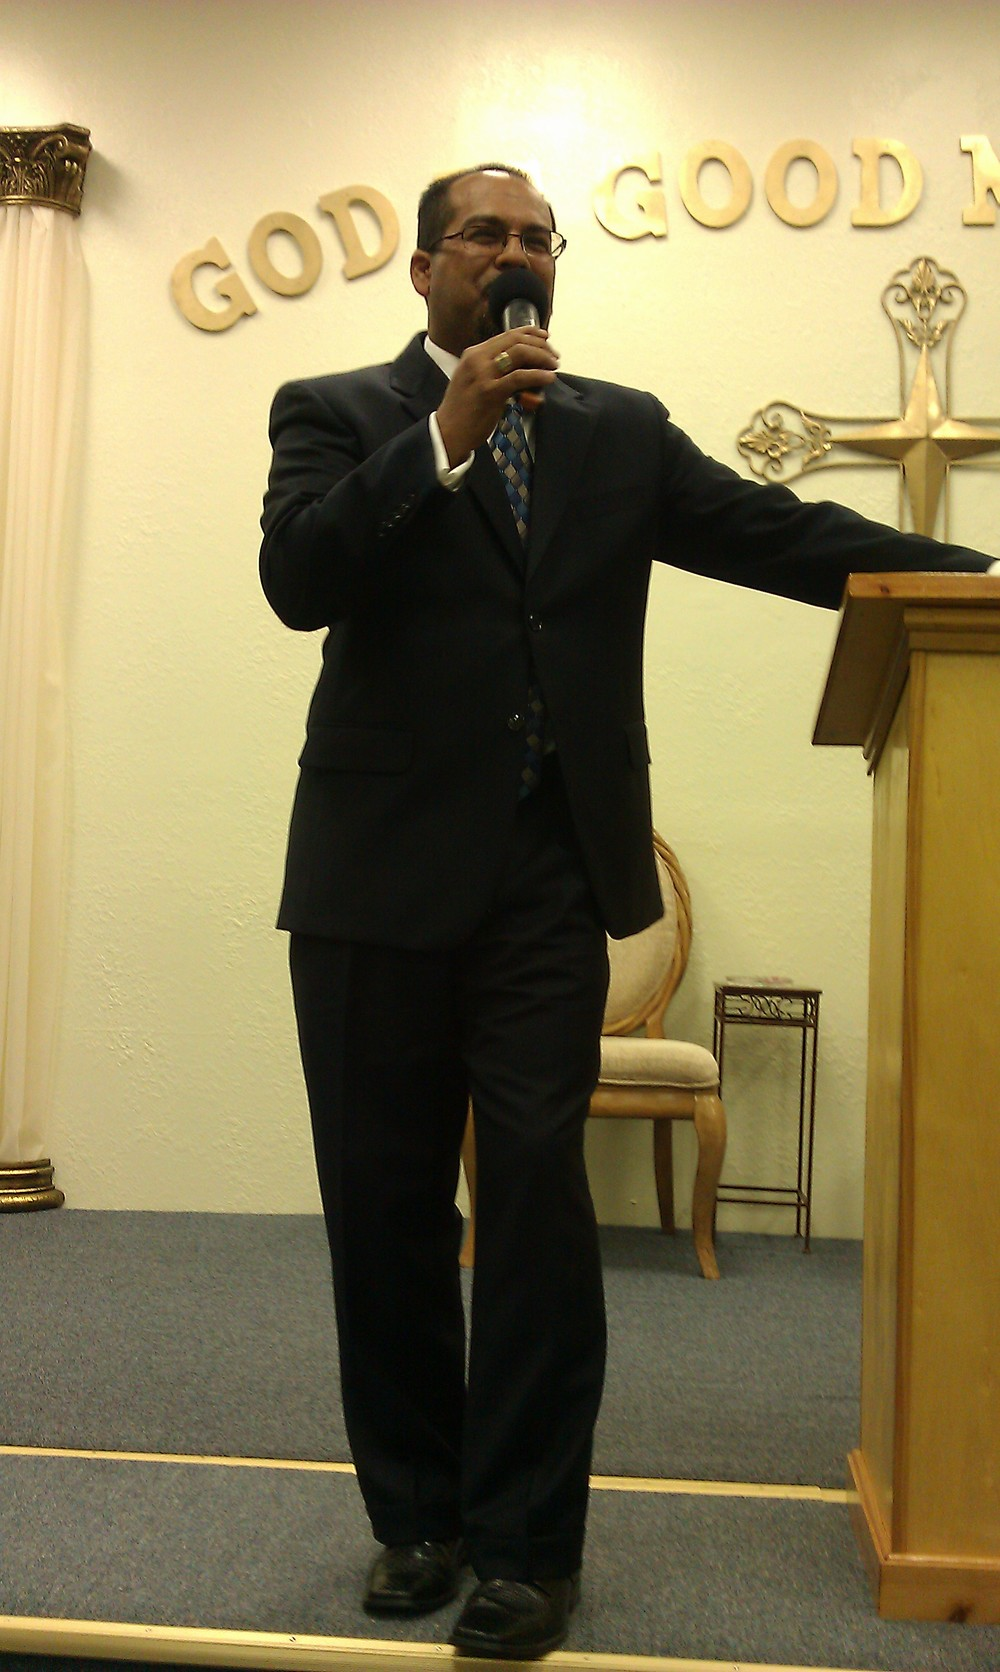 Pastor Frank at God Is Good Ministries.